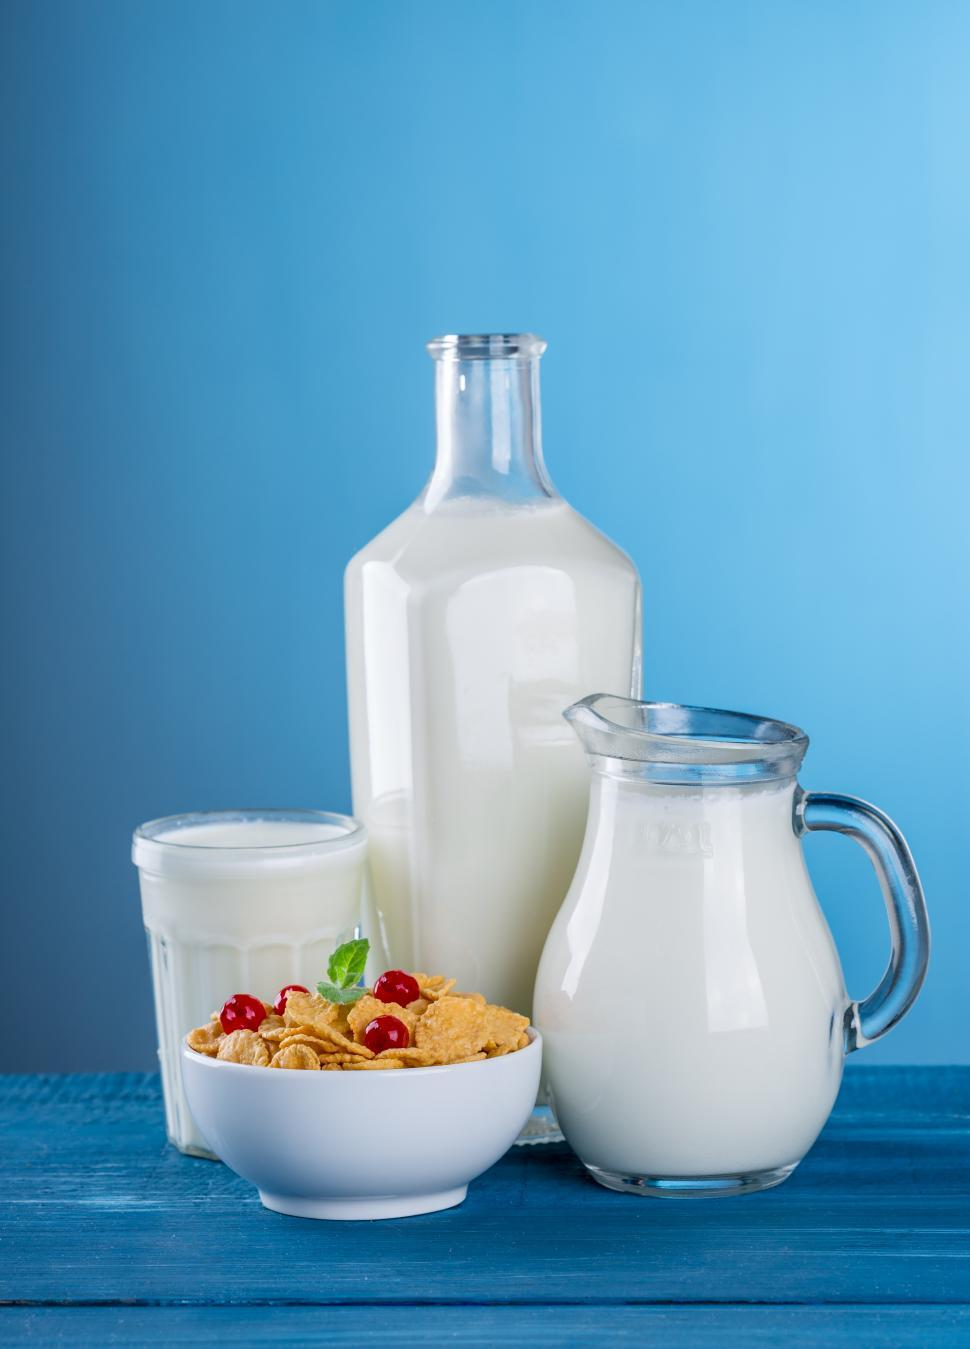 Download Free Stock HD Photo of Close up of a glass, a pitcher and a bottle containing milk Online